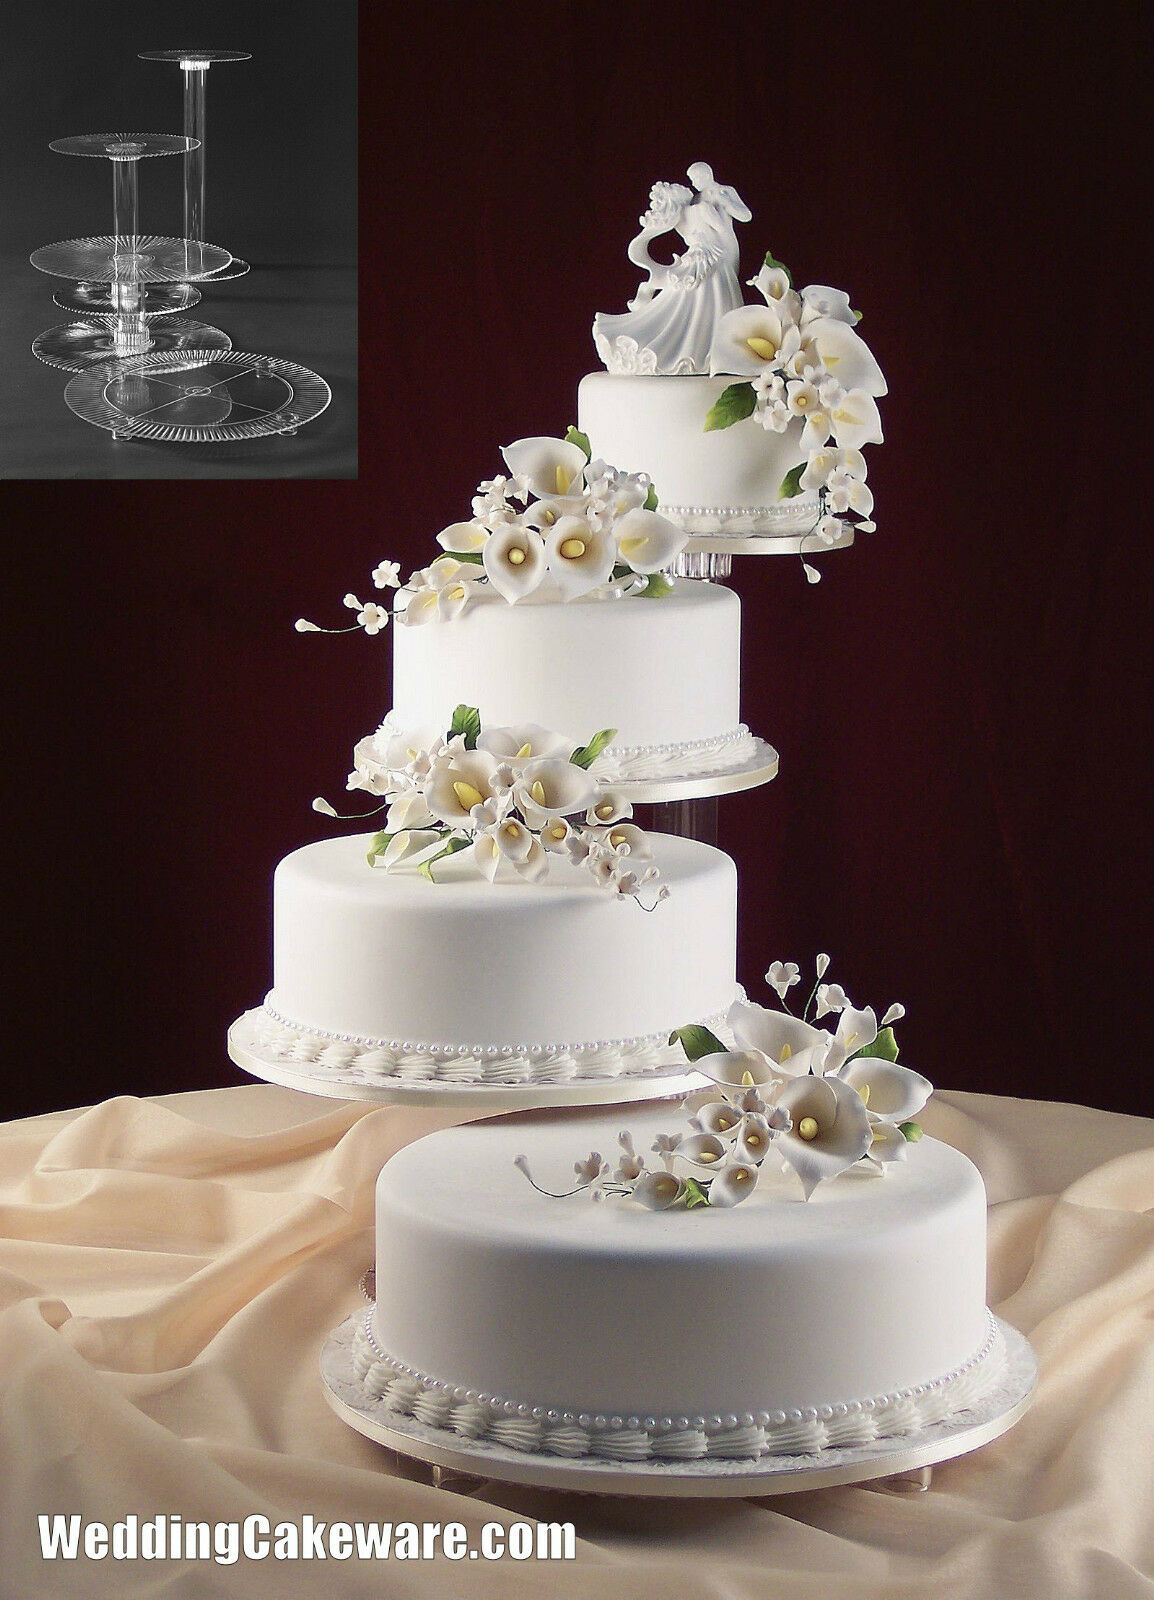 wedding cake 4 tier stands wedding cakes stands bling wedding cake stand drum 18 21706